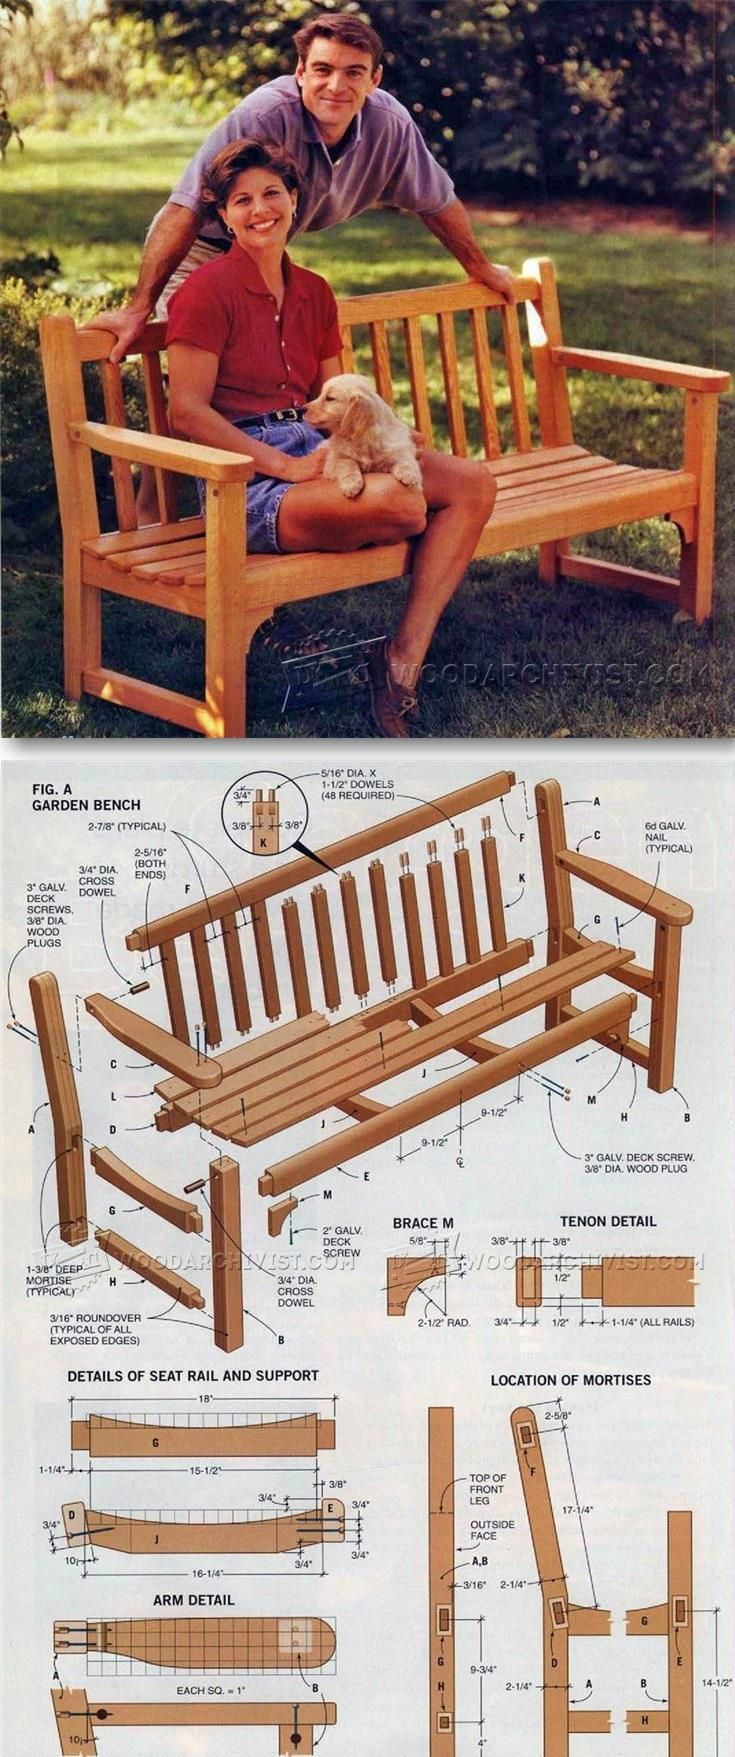 Garden Bench Plans - Outdoor Furniture Plans and Projects ...